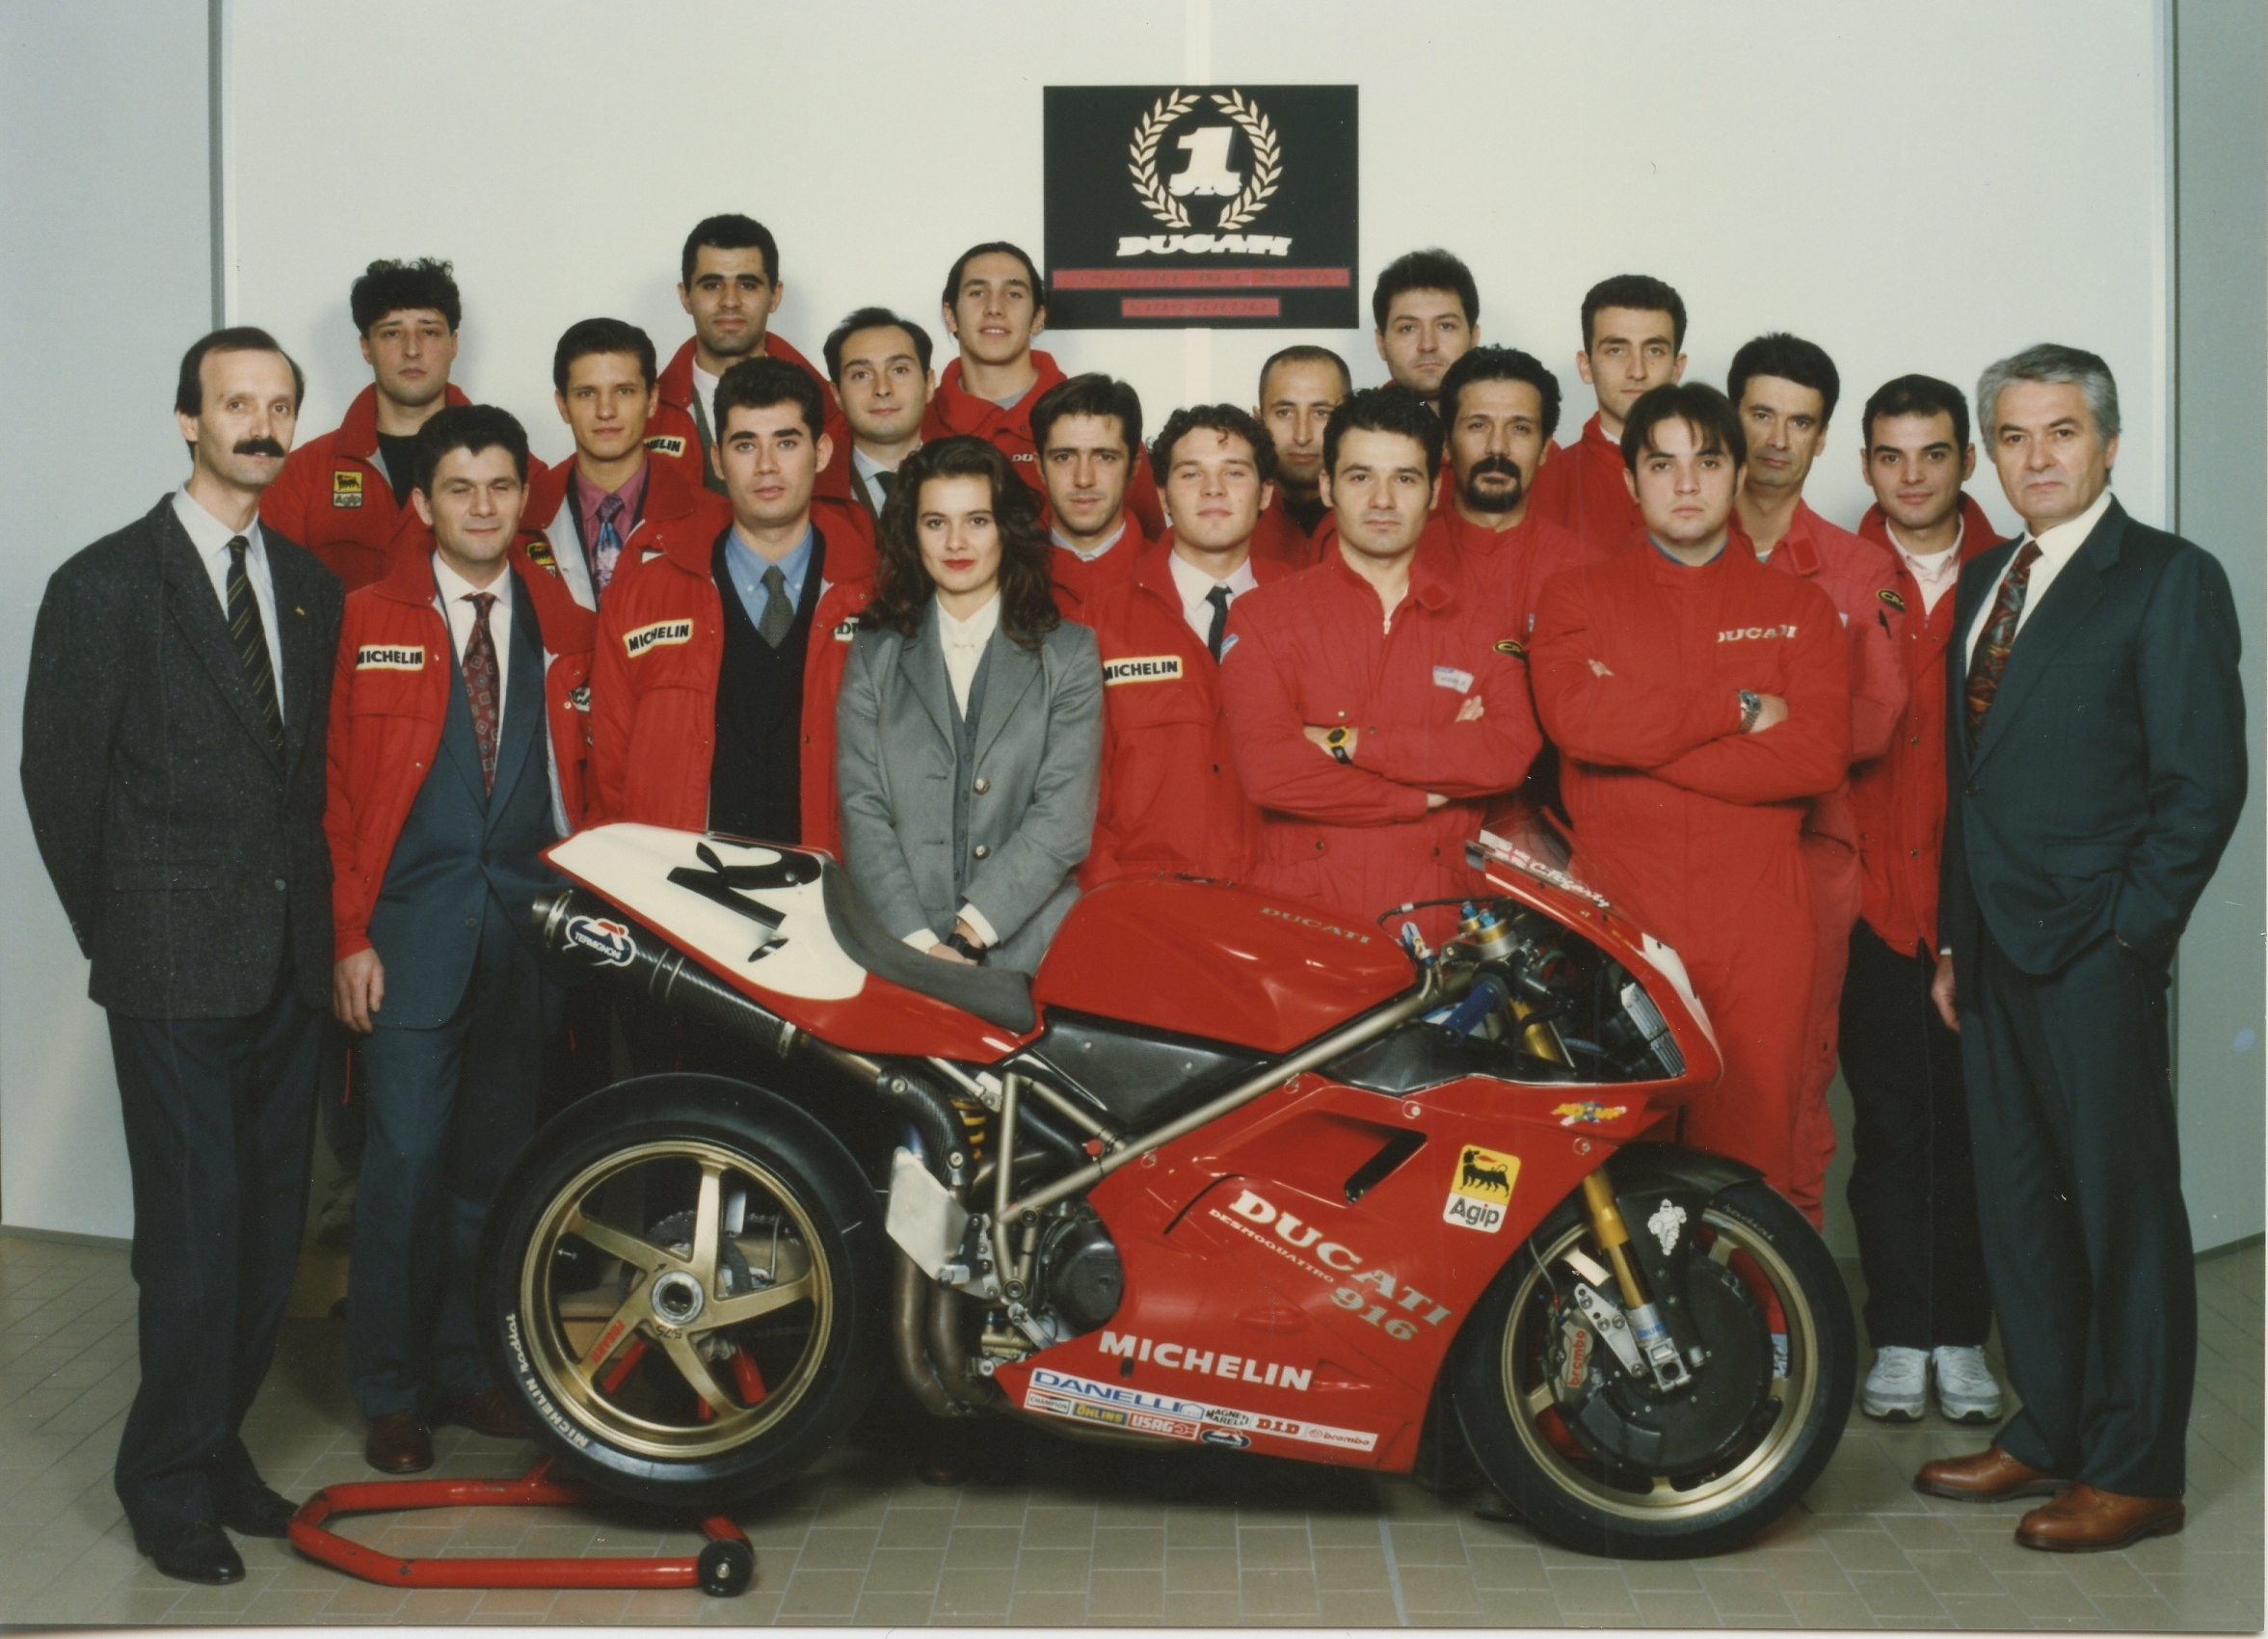 Massimo Tamburini with his 916 and Ducati employees